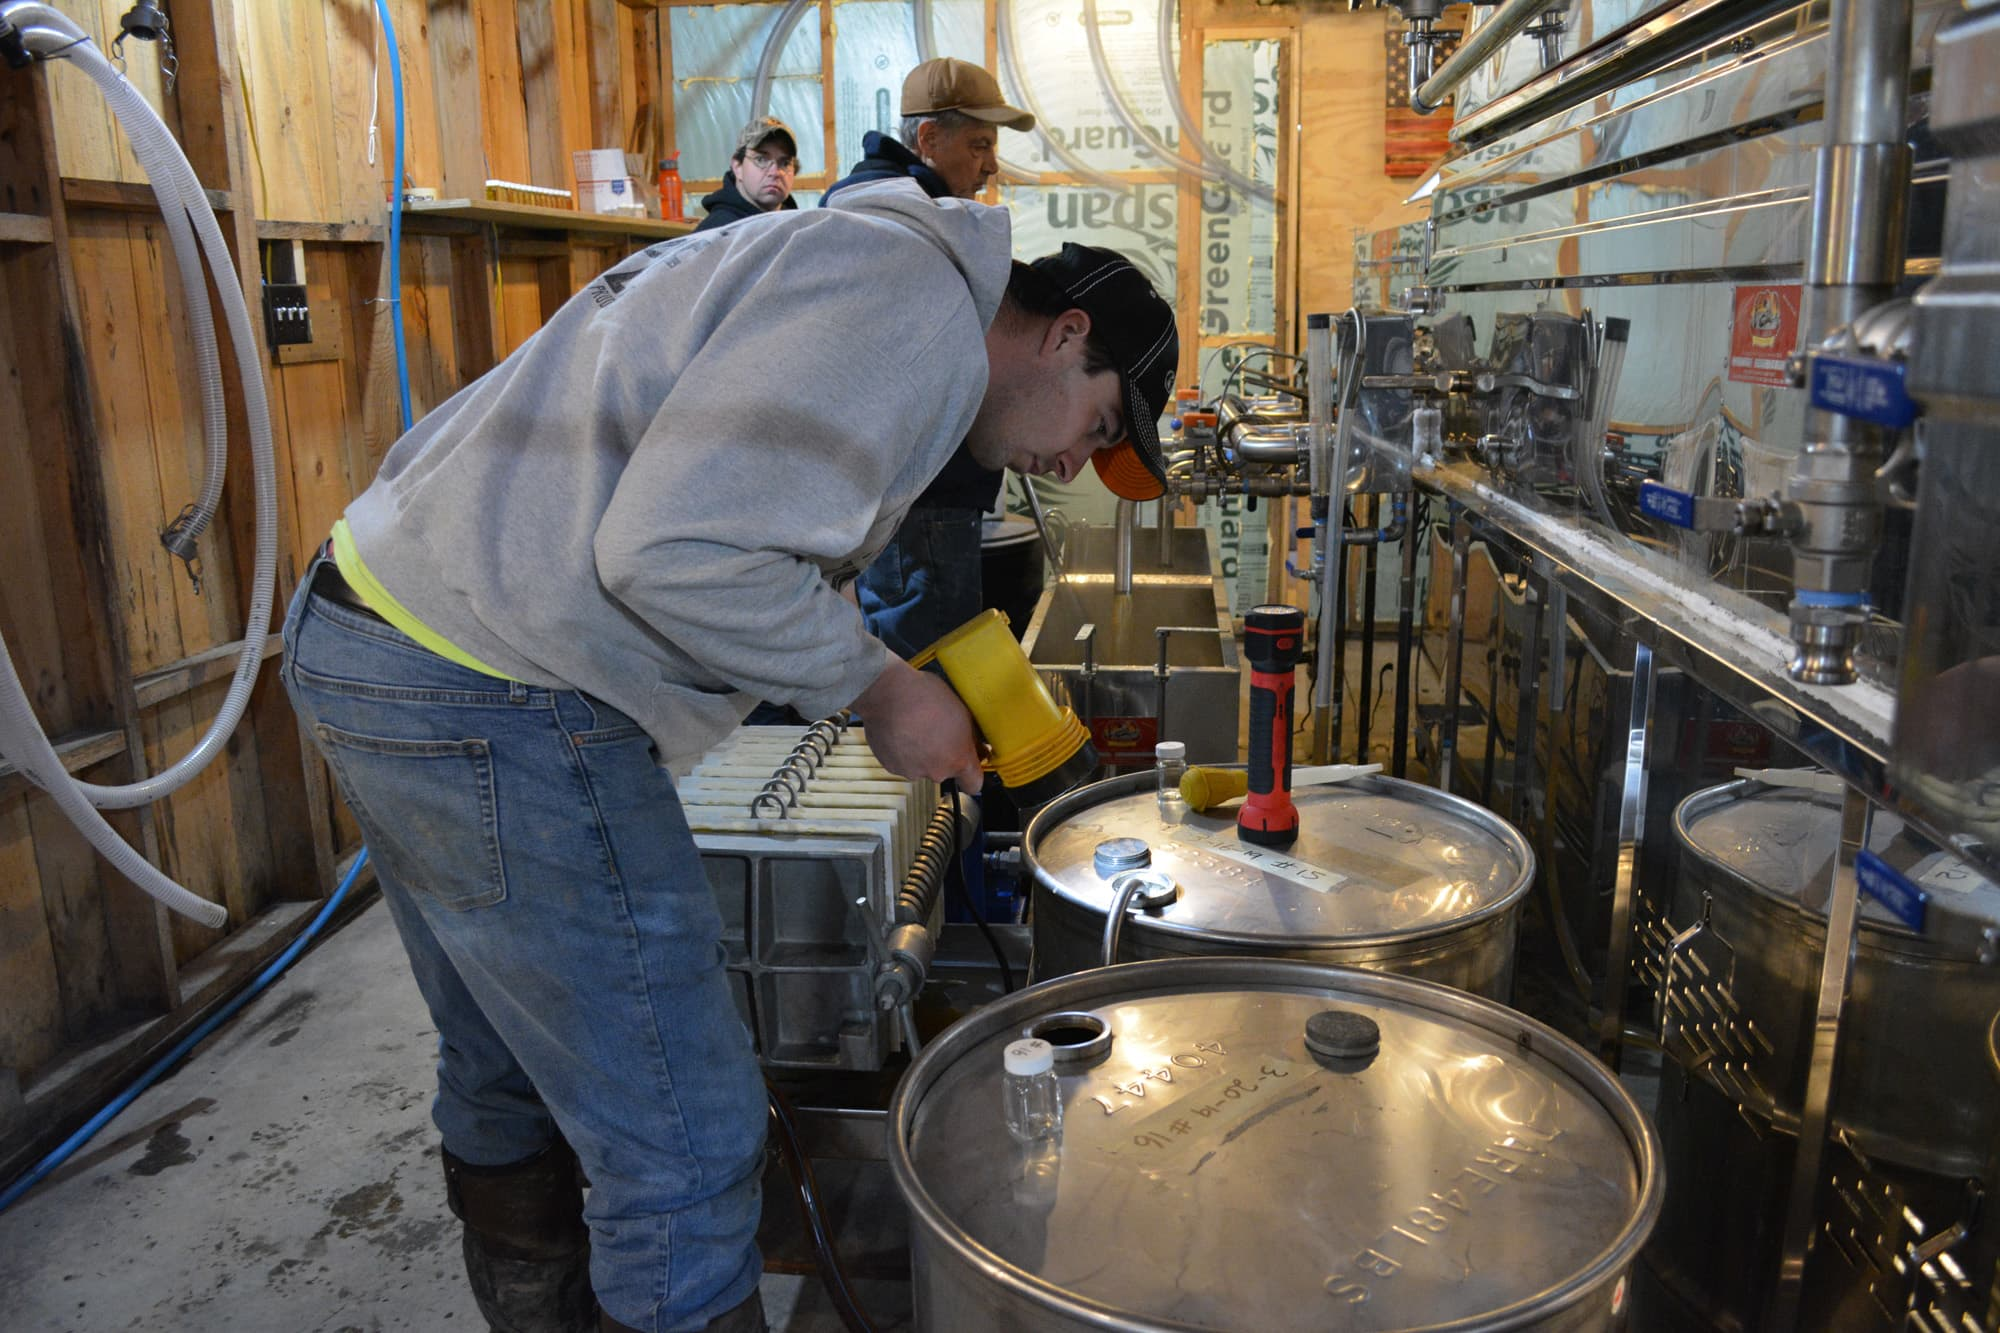 The finished syrup courses through a final set of tubes and into 40-gallon drums. To ensure the barrels don't overflow, Williams monitors the syrup's level with a flashlight.